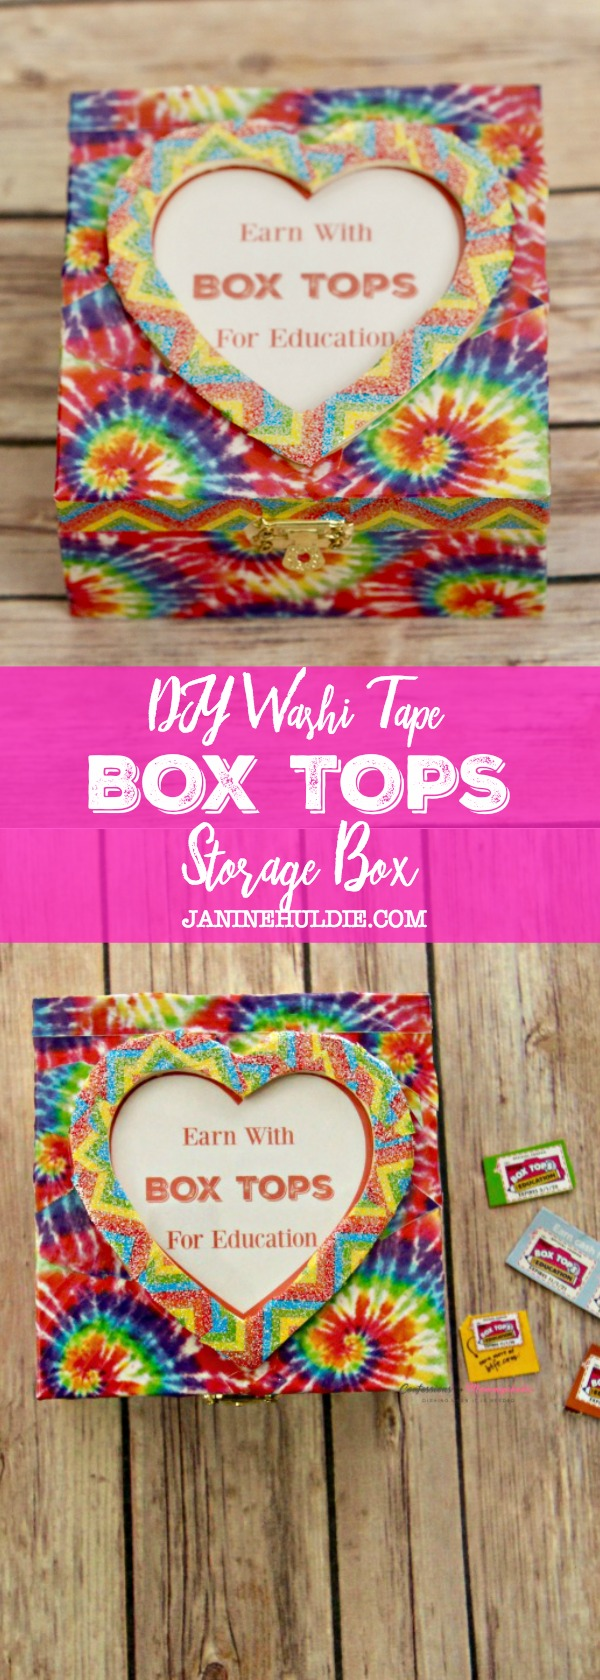 DIY Washi Tape Box Tops Storage Box